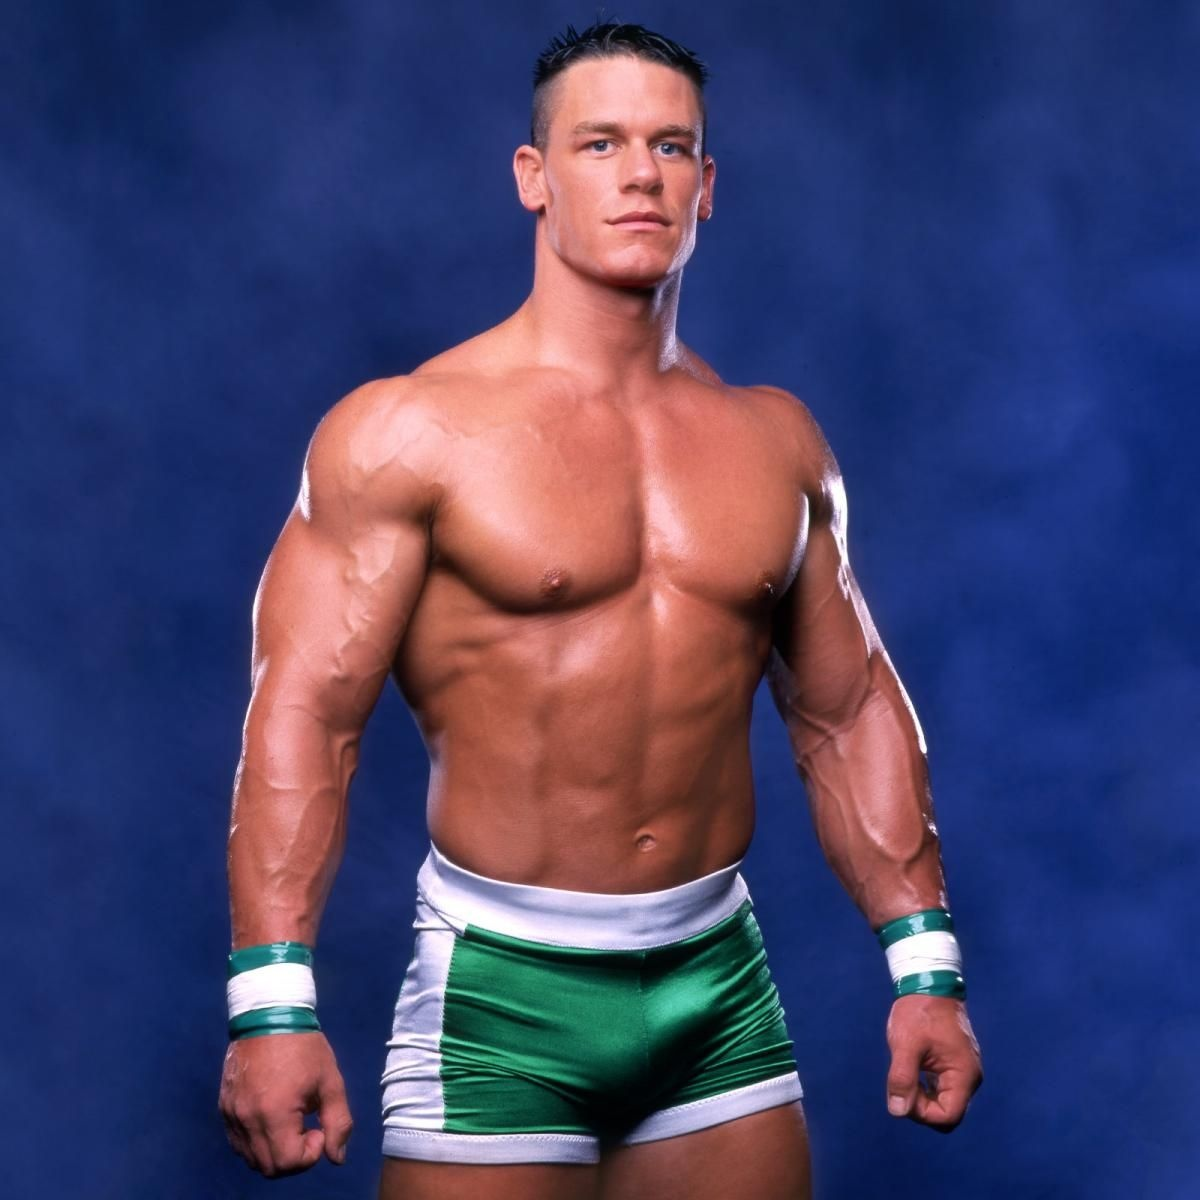 fc74b38a64 However John Cena's career didn't take off until a few months later when  the WWE had a special Halloween party episode in October of 2002 on  Smackdown where ...